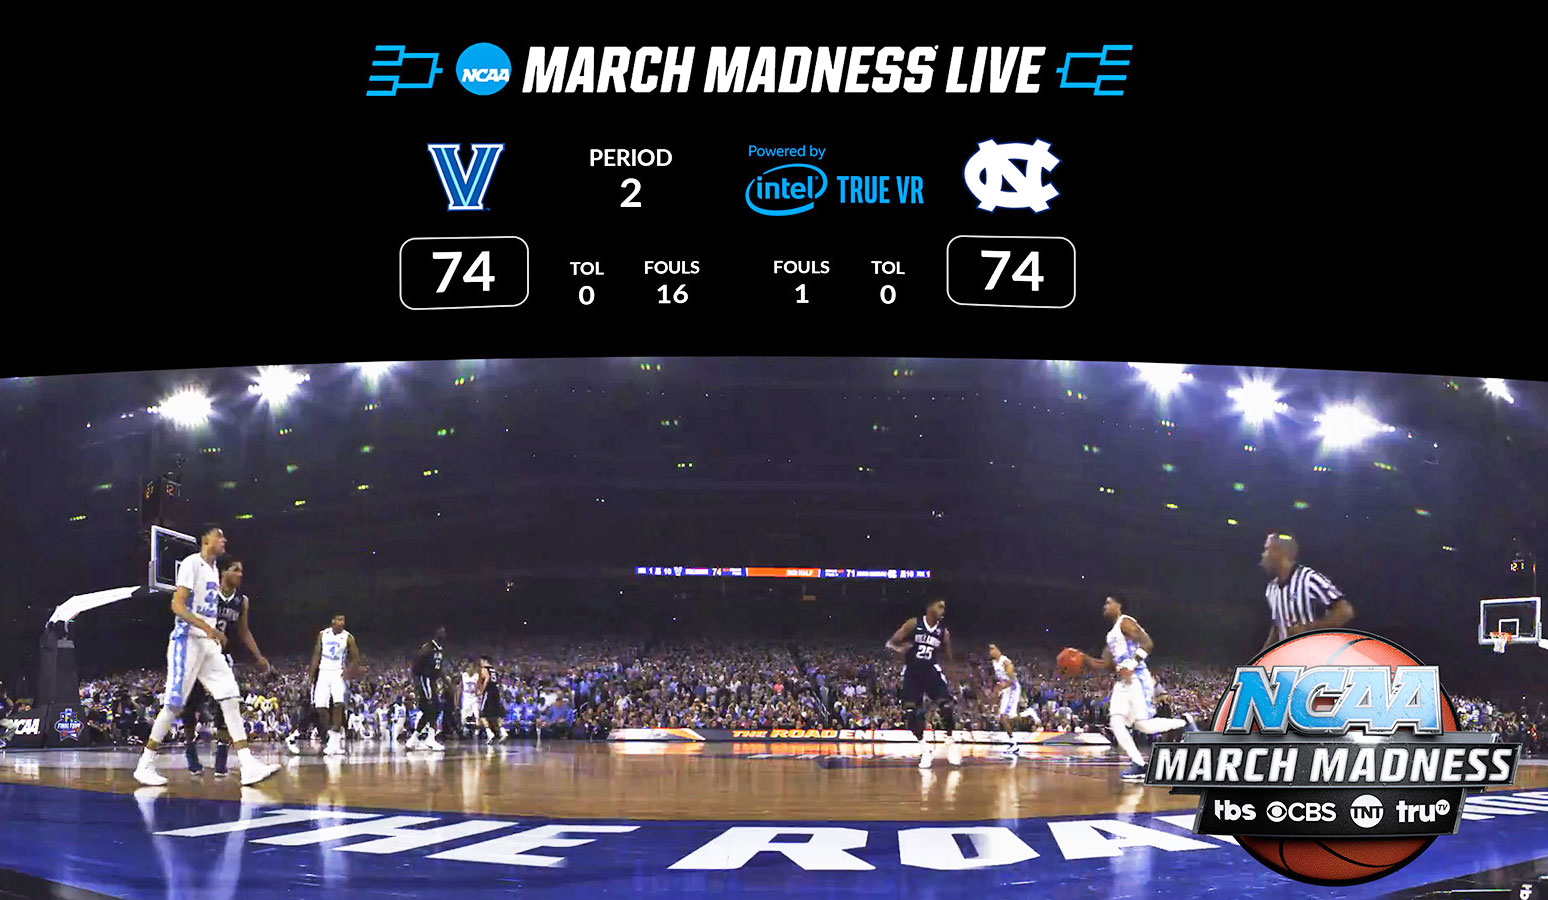 Turner Sports Cbs Sports To Preview March Madness In: March Madness Is Back In VR, But It Will Cost You